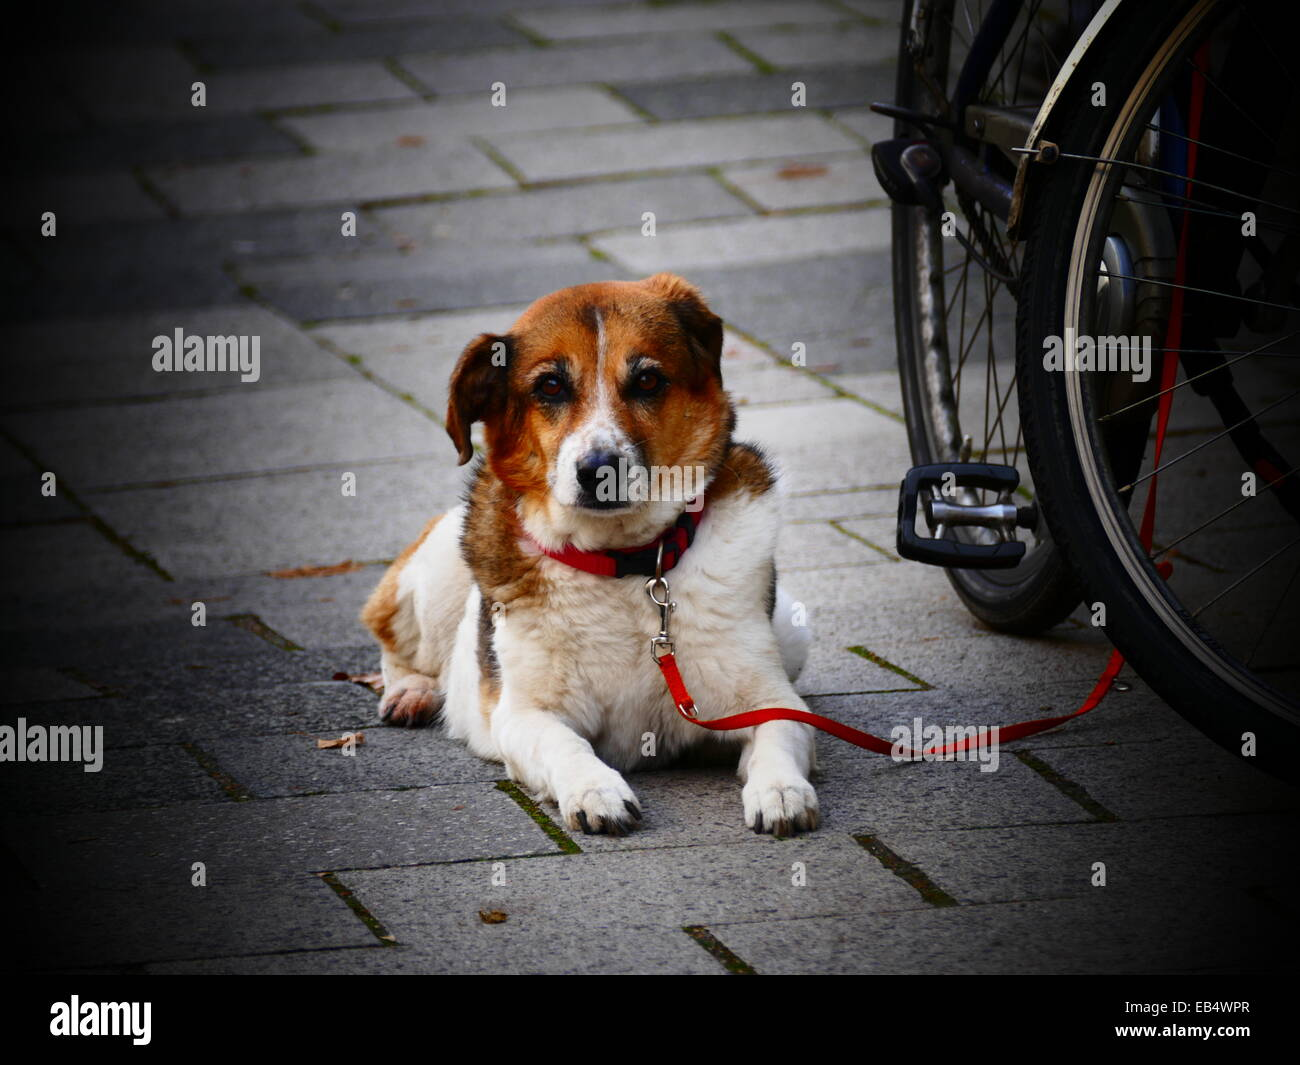 A dog patiently waiting for its master next to Bicycle - Stock Image